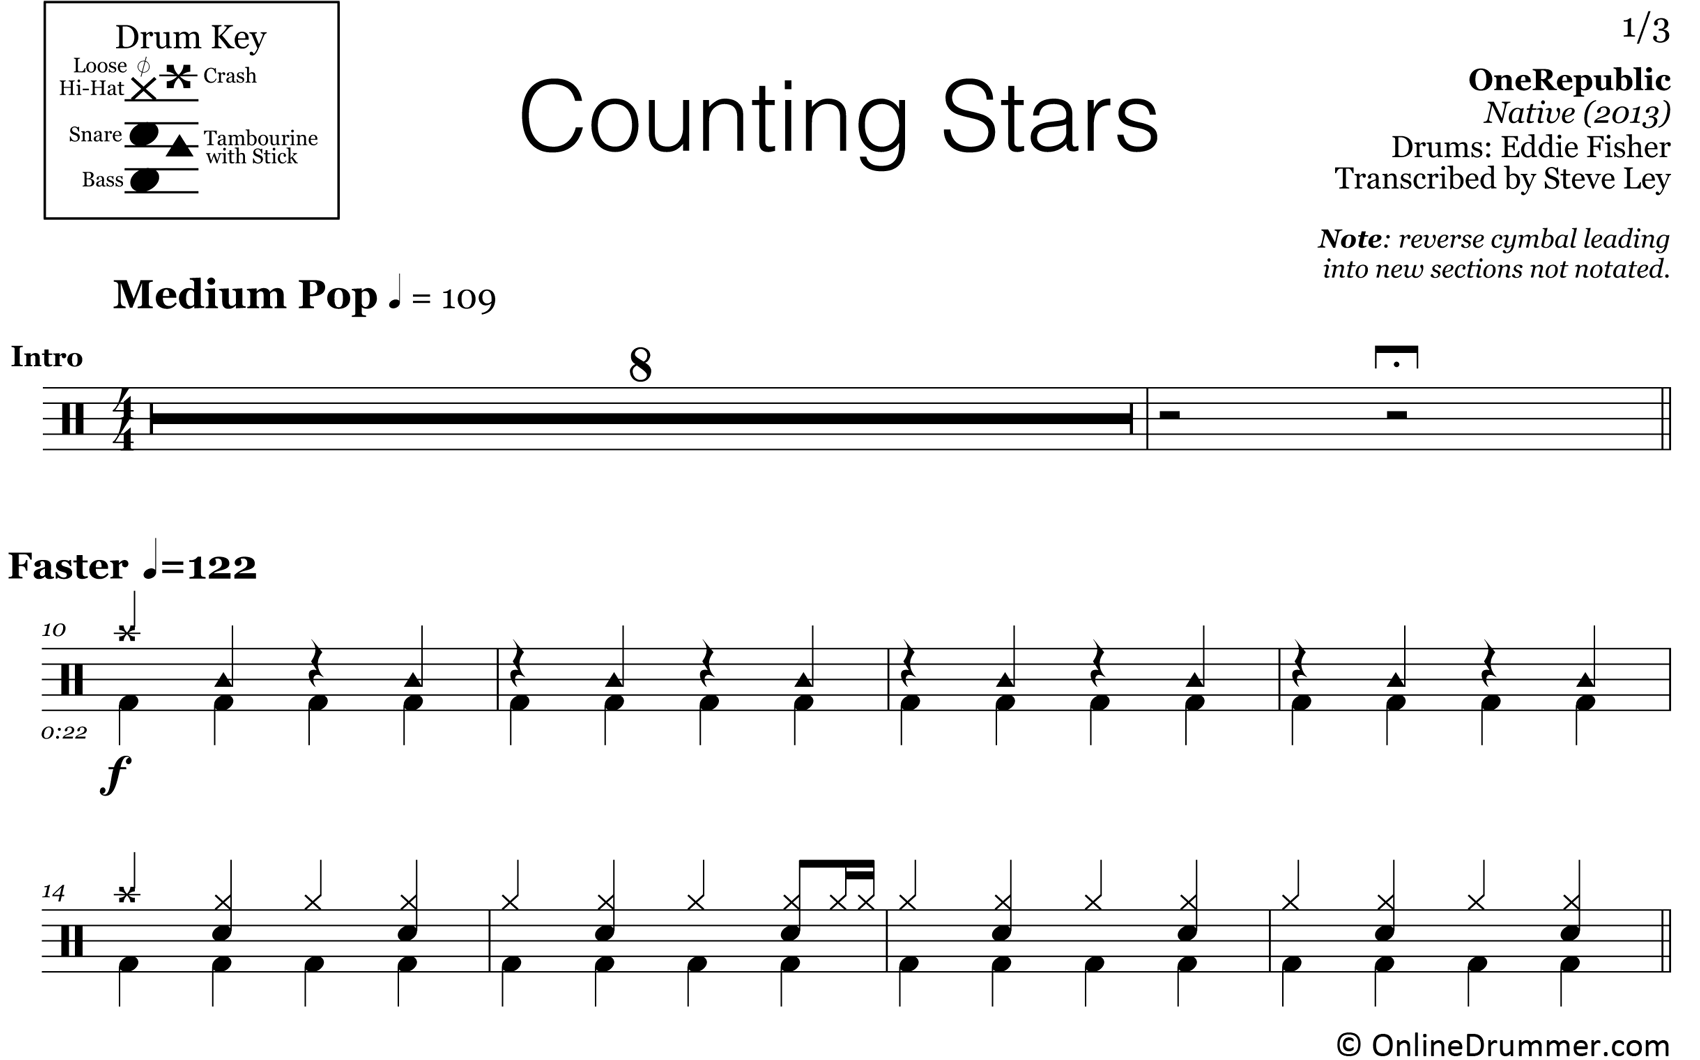 Counting Stars - One Republic - Drum Sheet Music